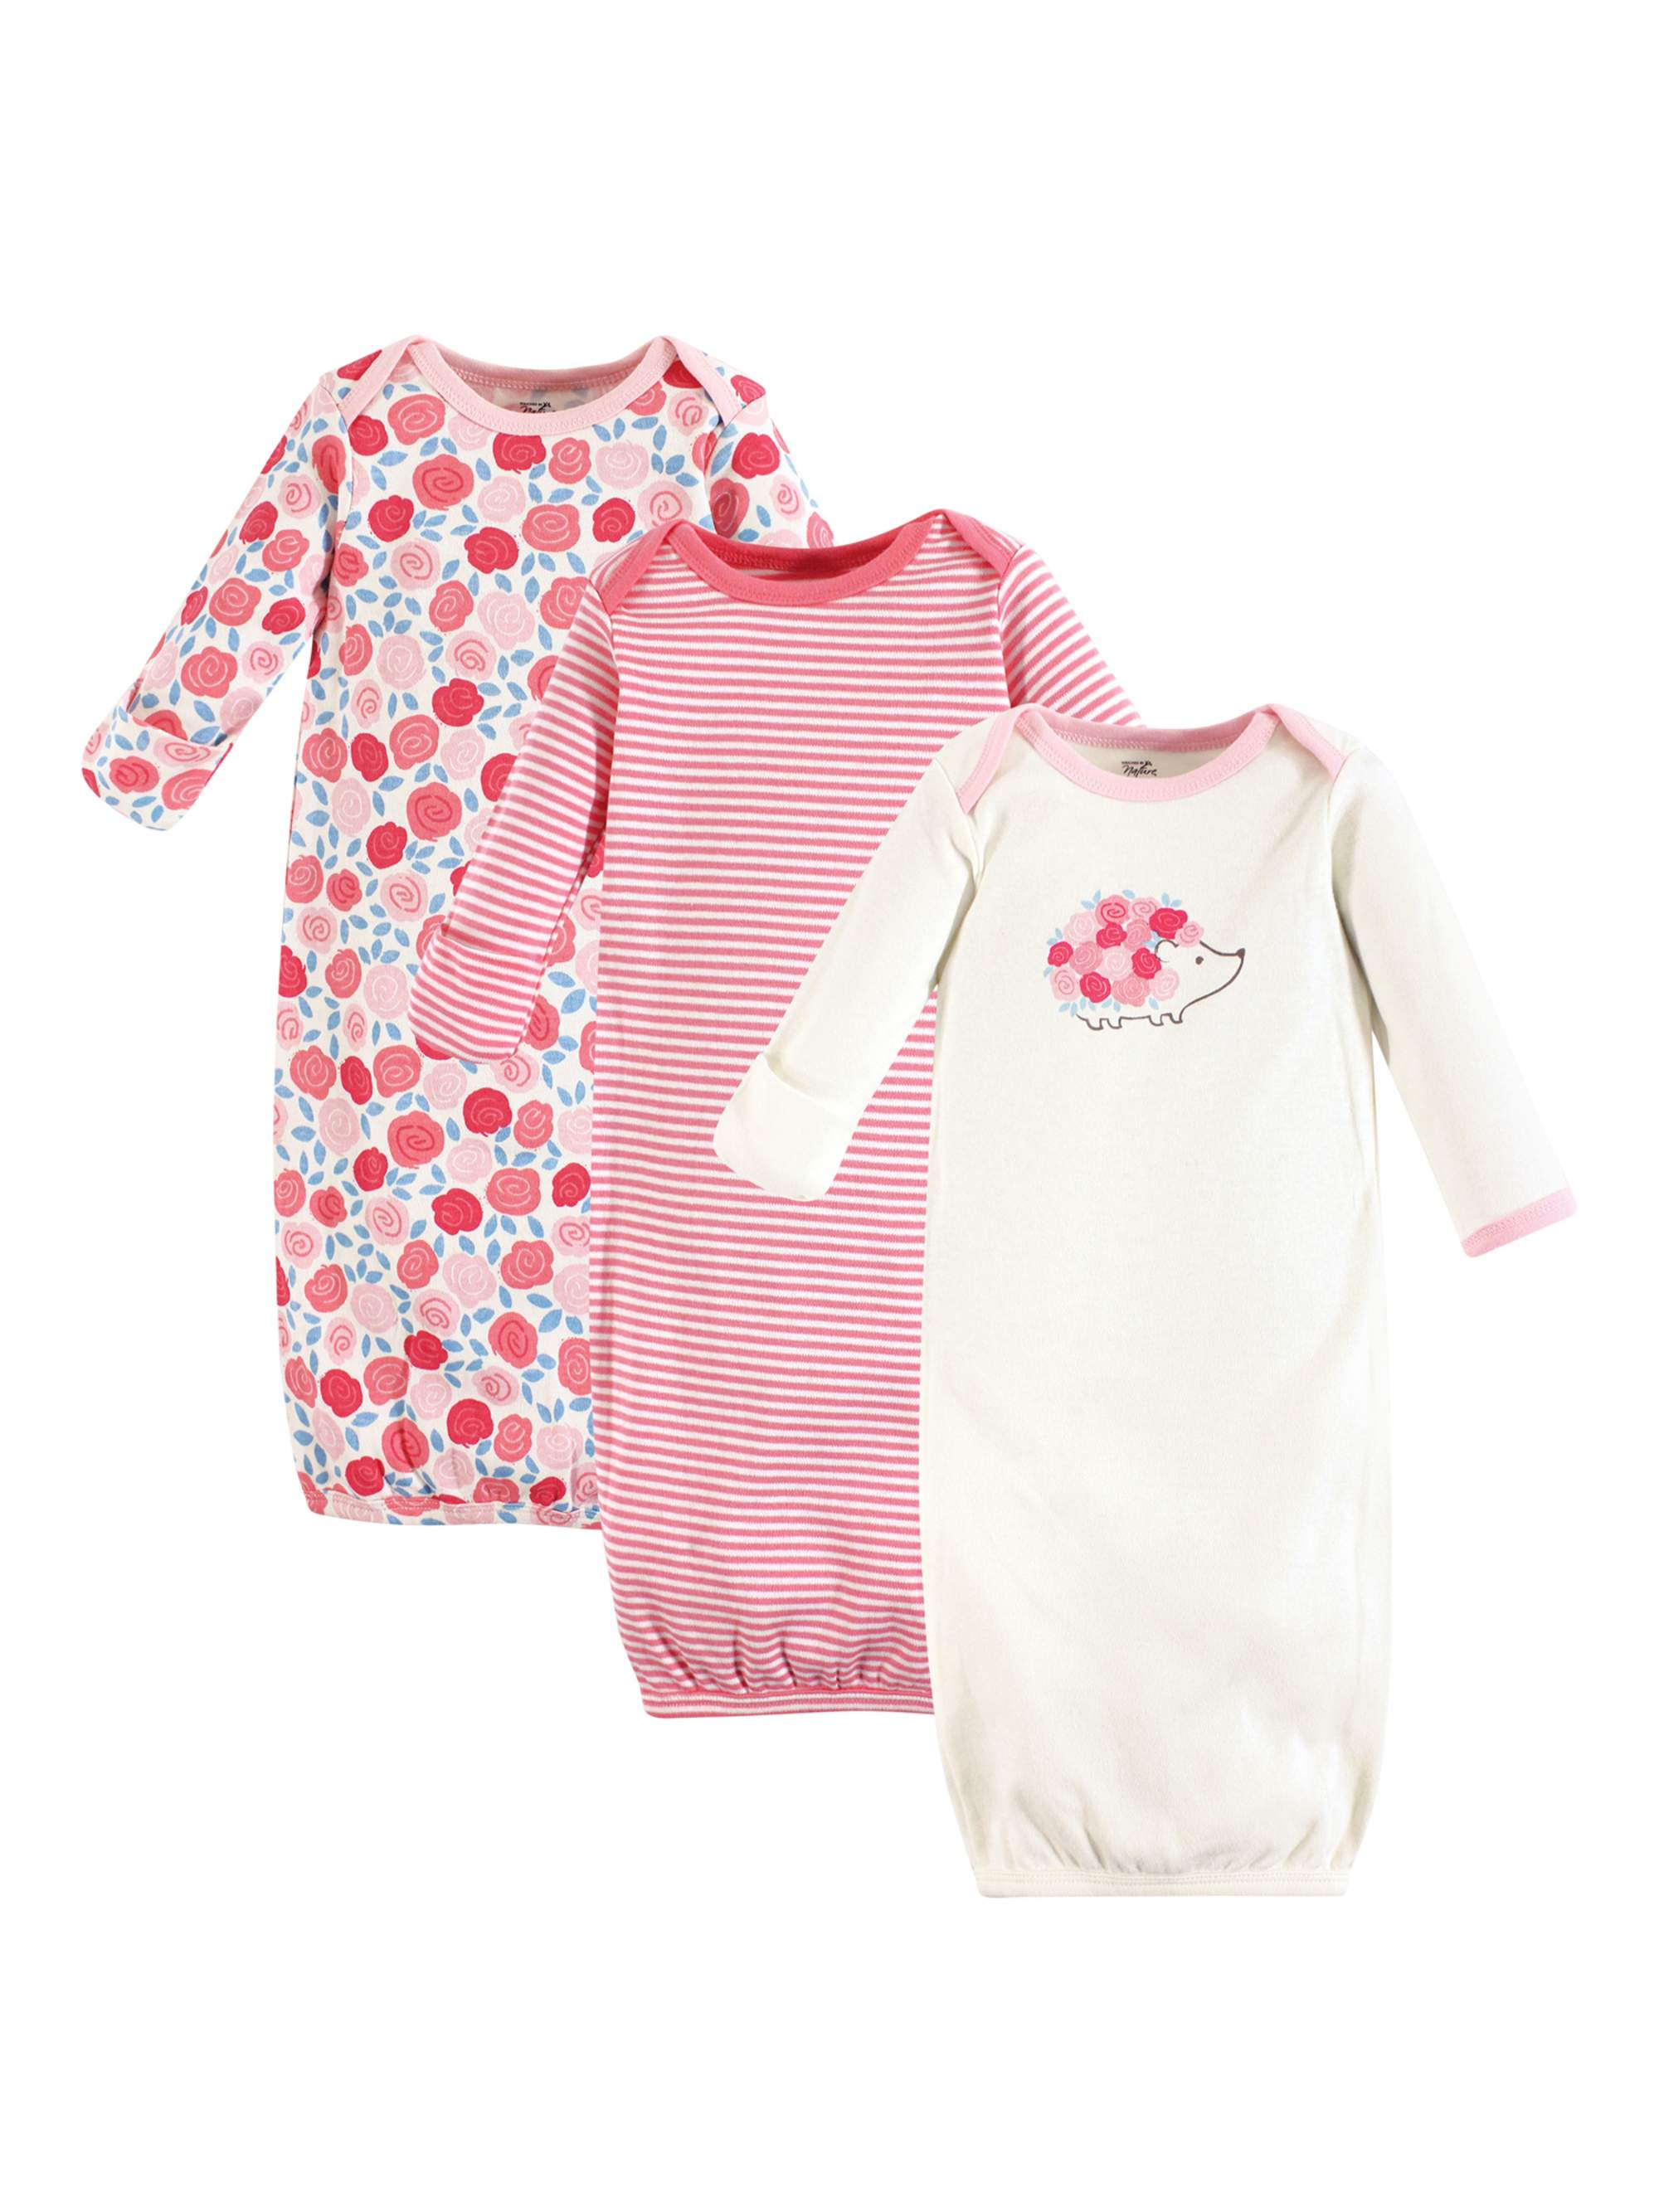 Organic Gowns 3pk (Baby Boys and Baby Girls)